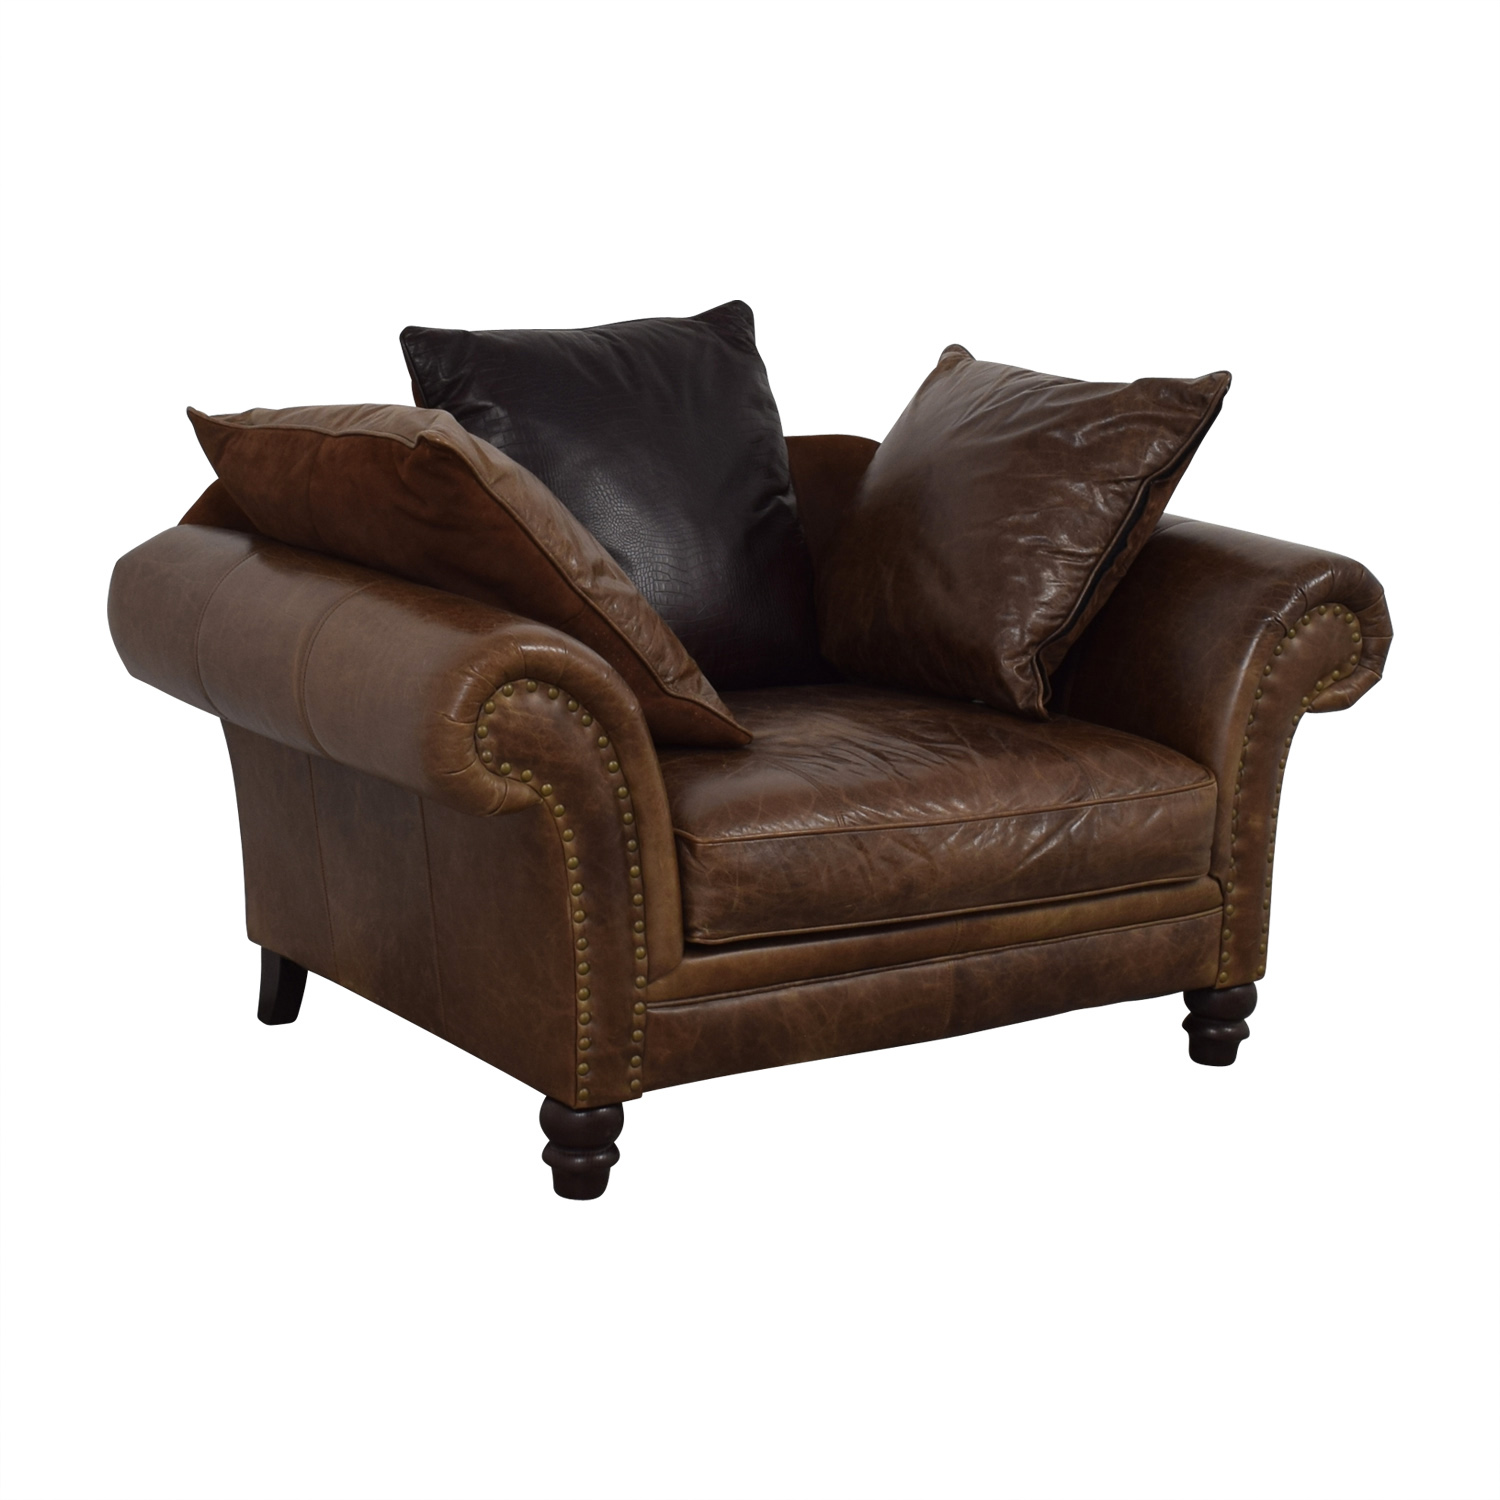 77% OFF - Bernhardt Bernhardt Brown Leather Nailhead ...